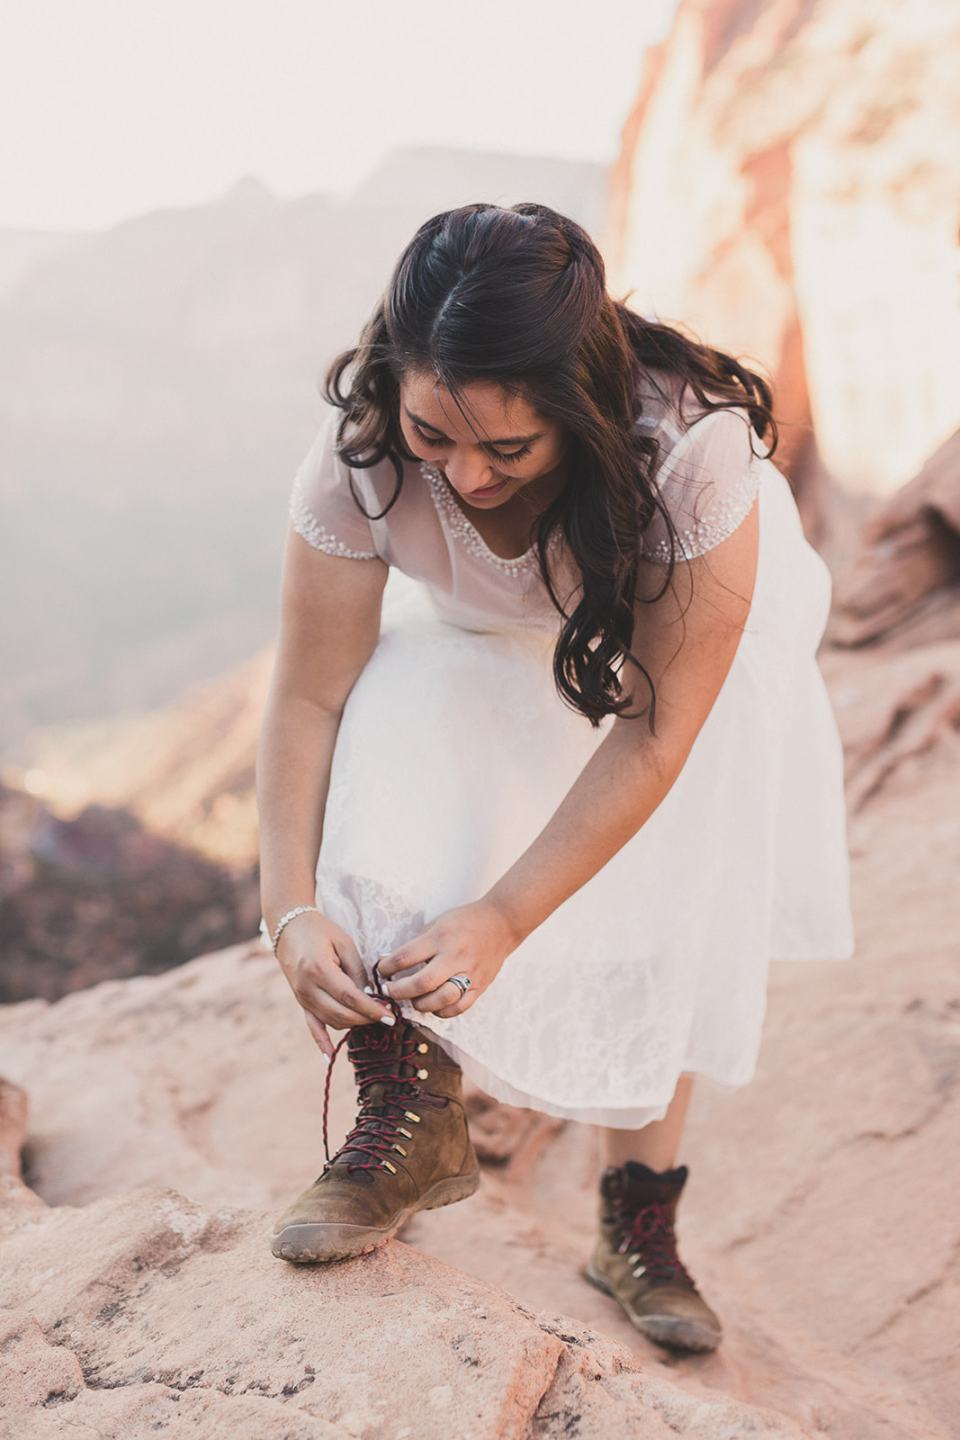 bride puts on hiking boots after wedding ceremony photographed by Taylor Made Photography